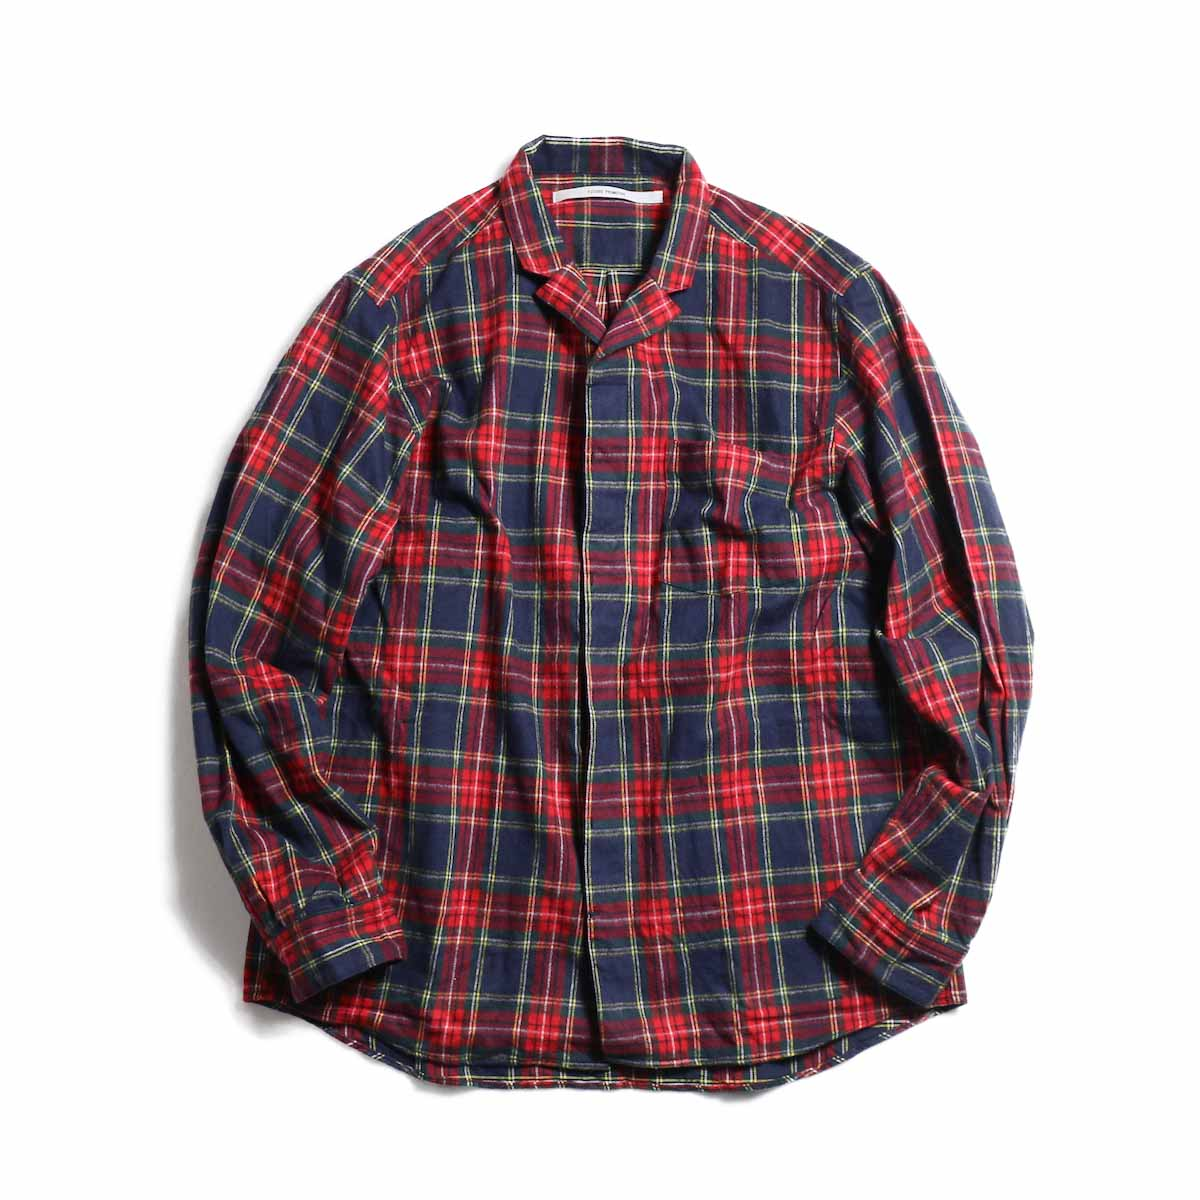 FUTURE PRIMITIVE / FP Notched Shirt(Tartan) -Navy